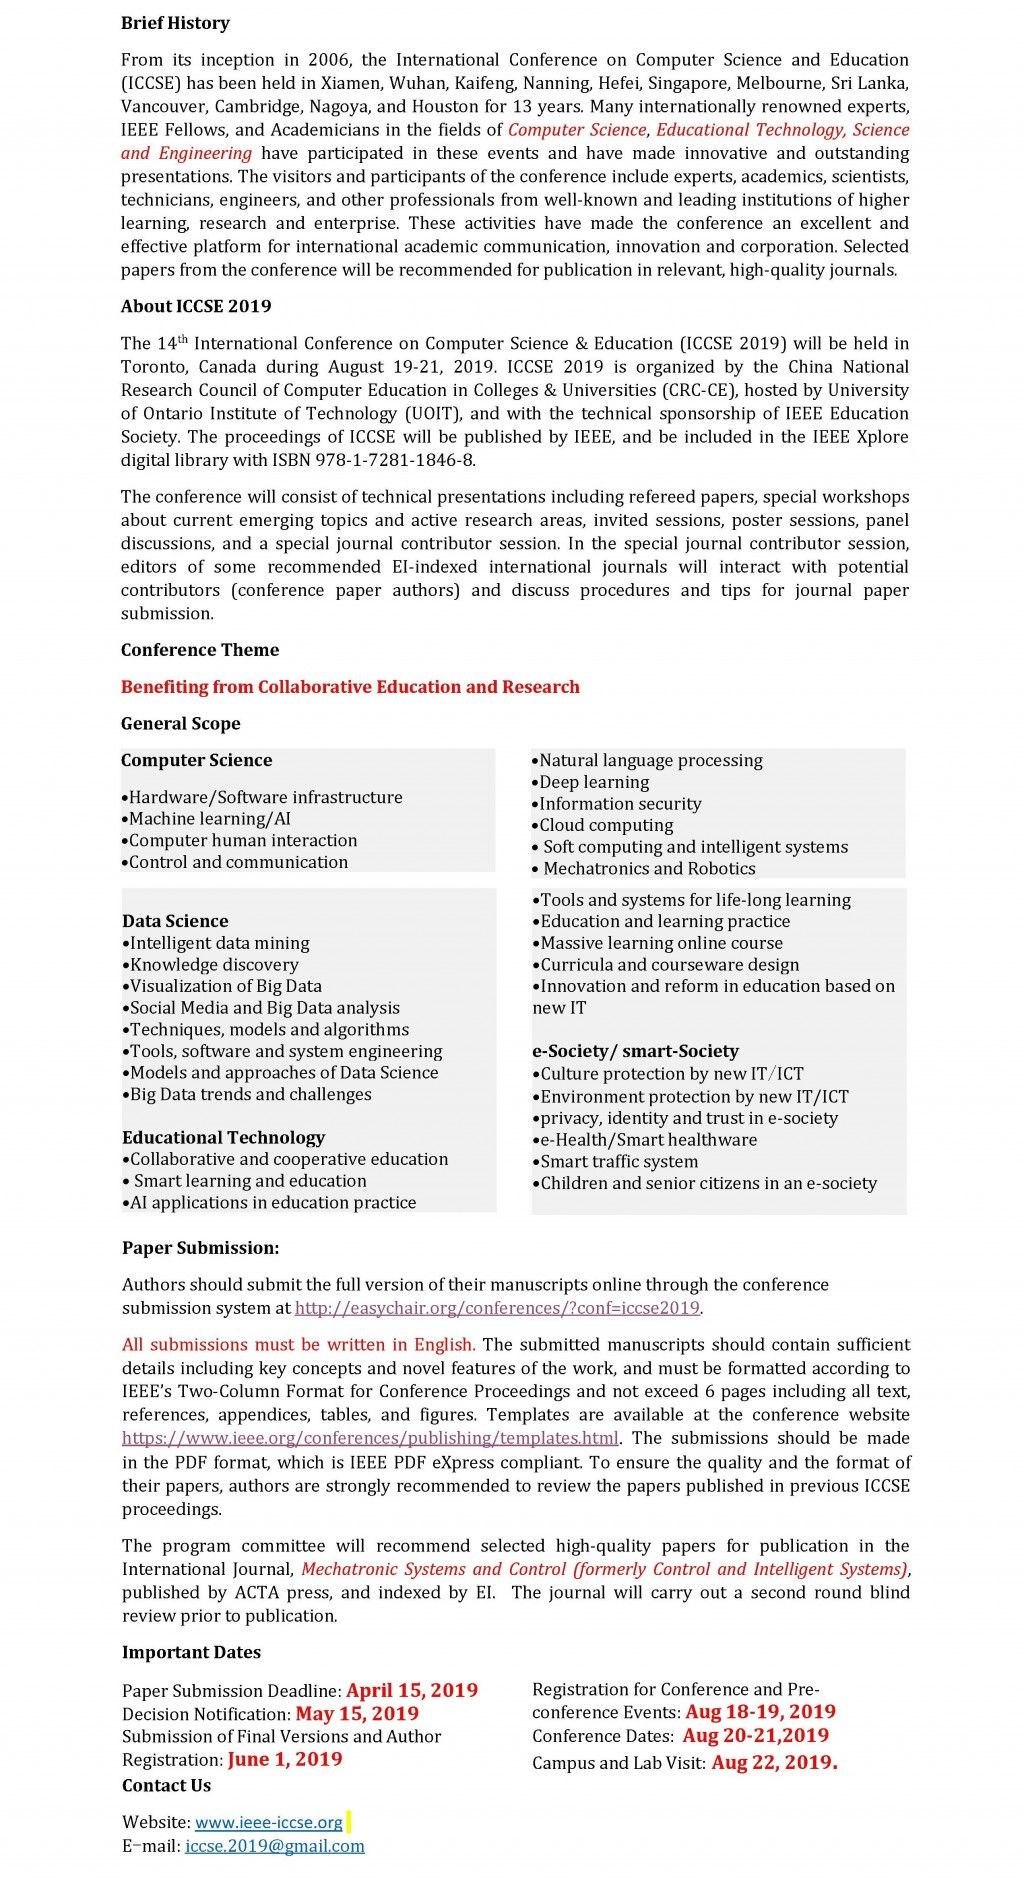 017 Ieee Researchs In Computer Science Pdf Cfp Phenomenal Research Papers Large